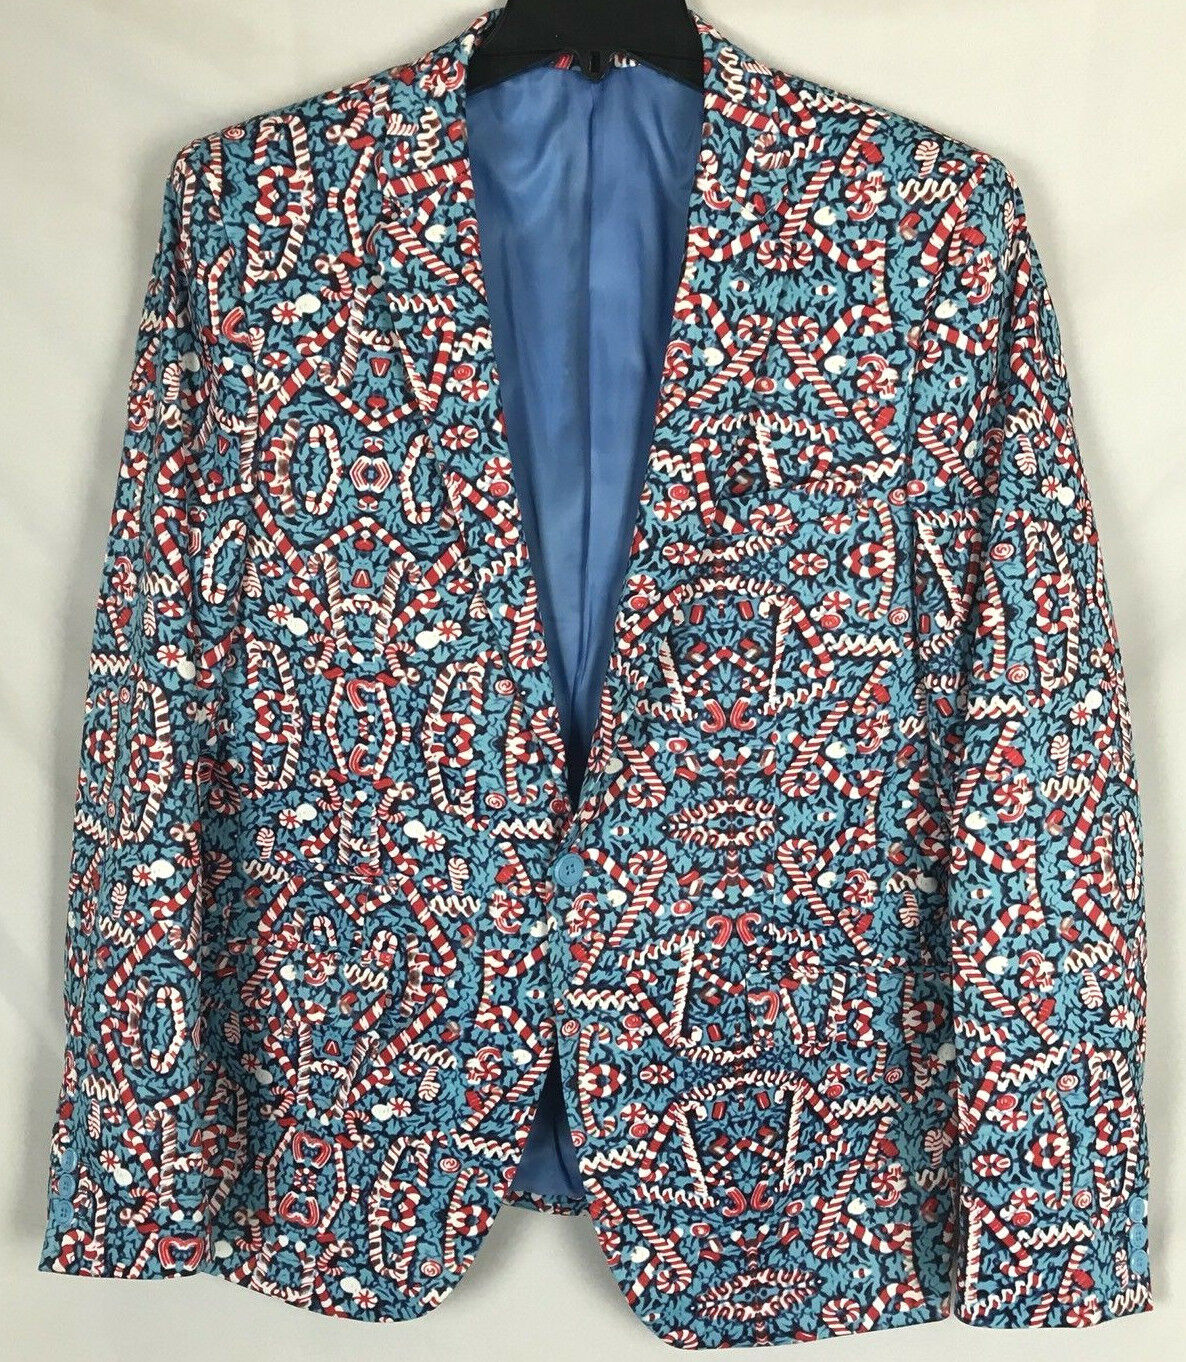 Suslo Couture Christmas Candy Cane Blazer Sport Coat NWT Ugly Sweater S(38) M(40